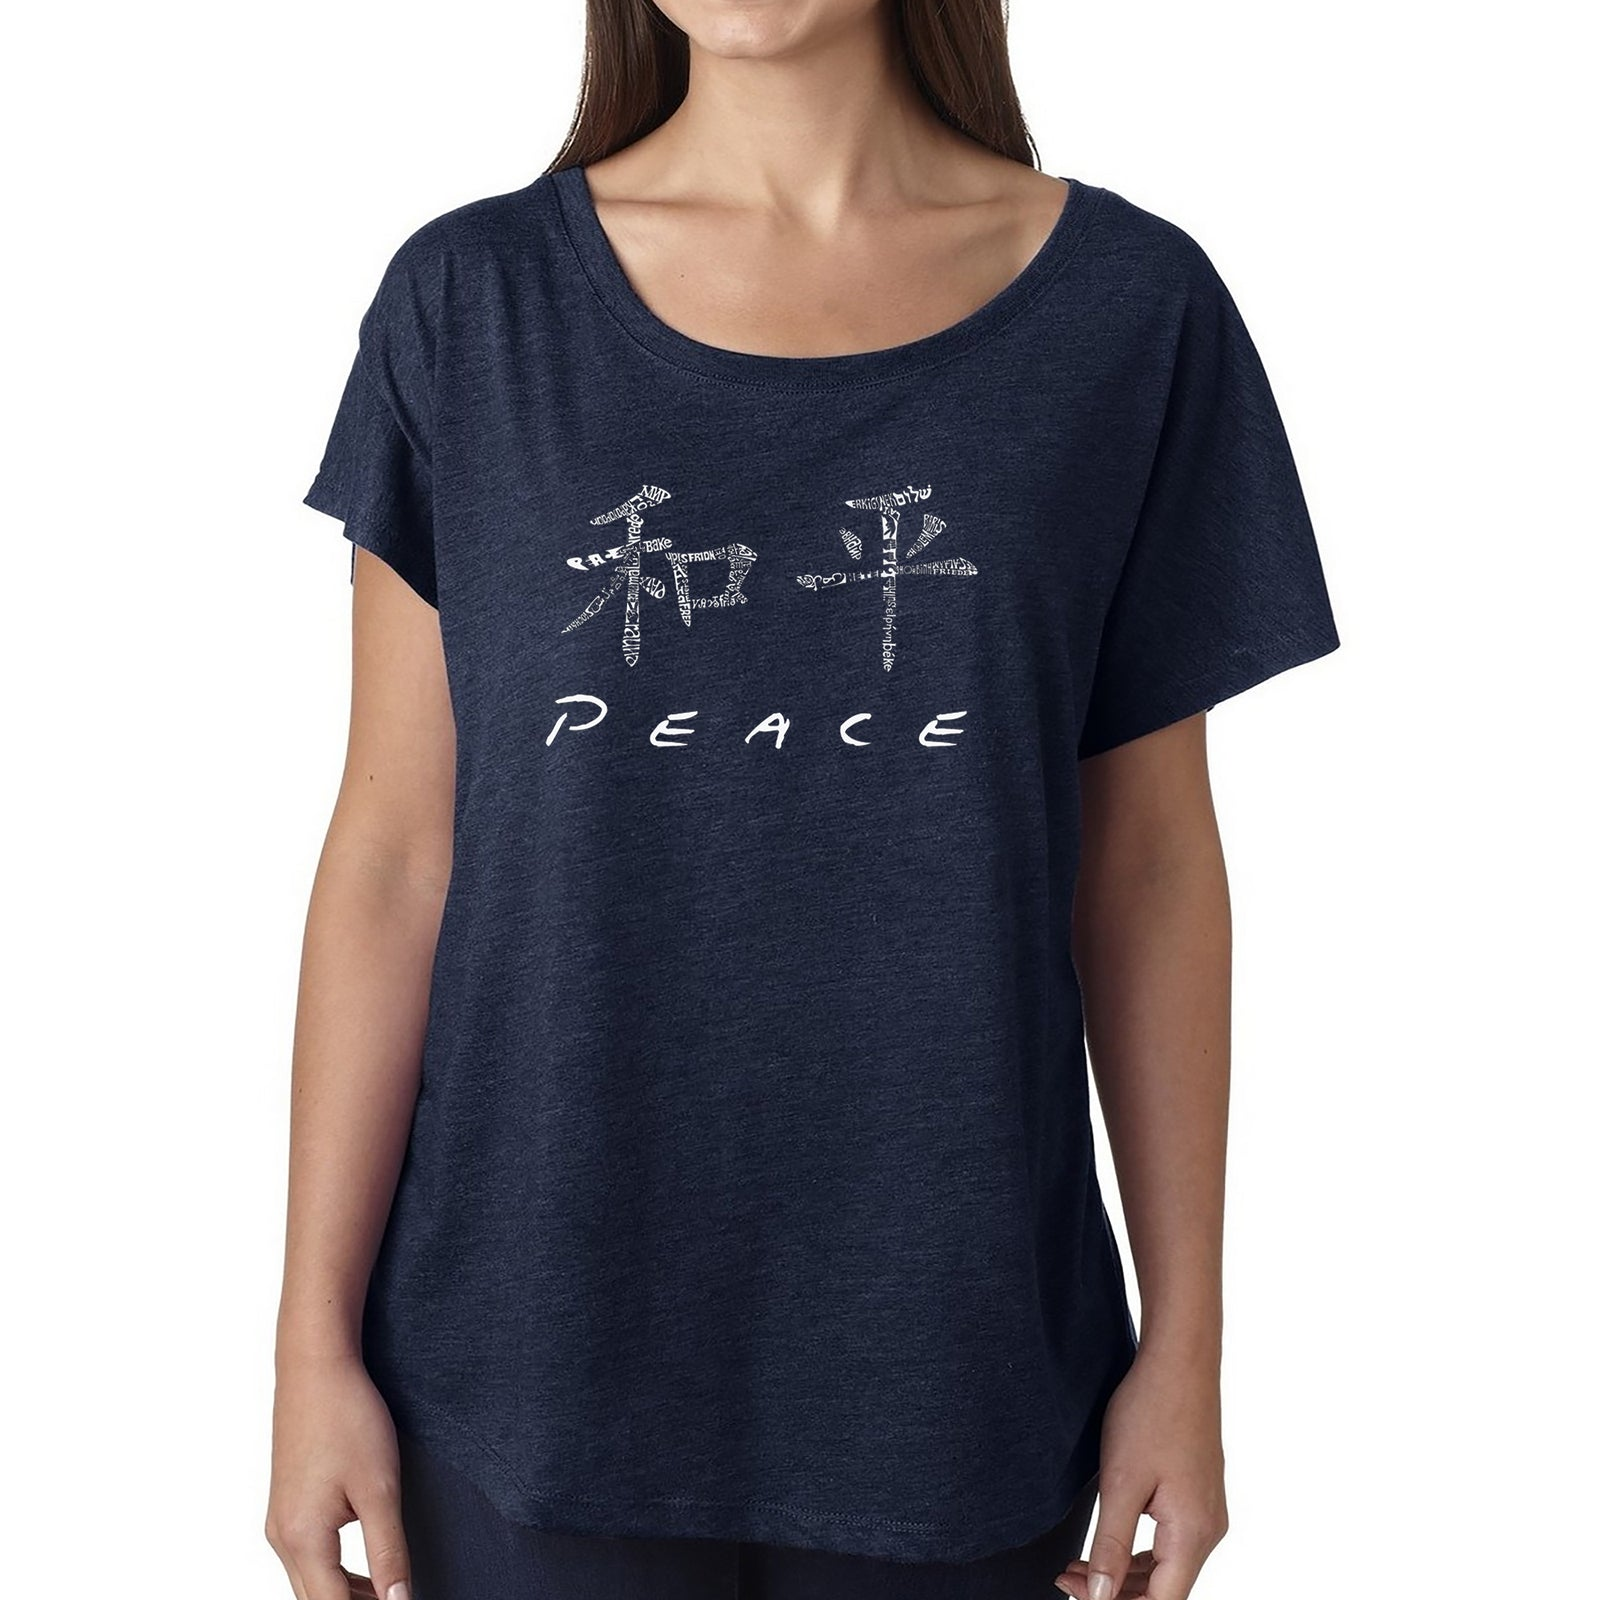 Women's Loose Fit Dolman Cut Word Art Shirt - CHINESE PEACE SYMBOL